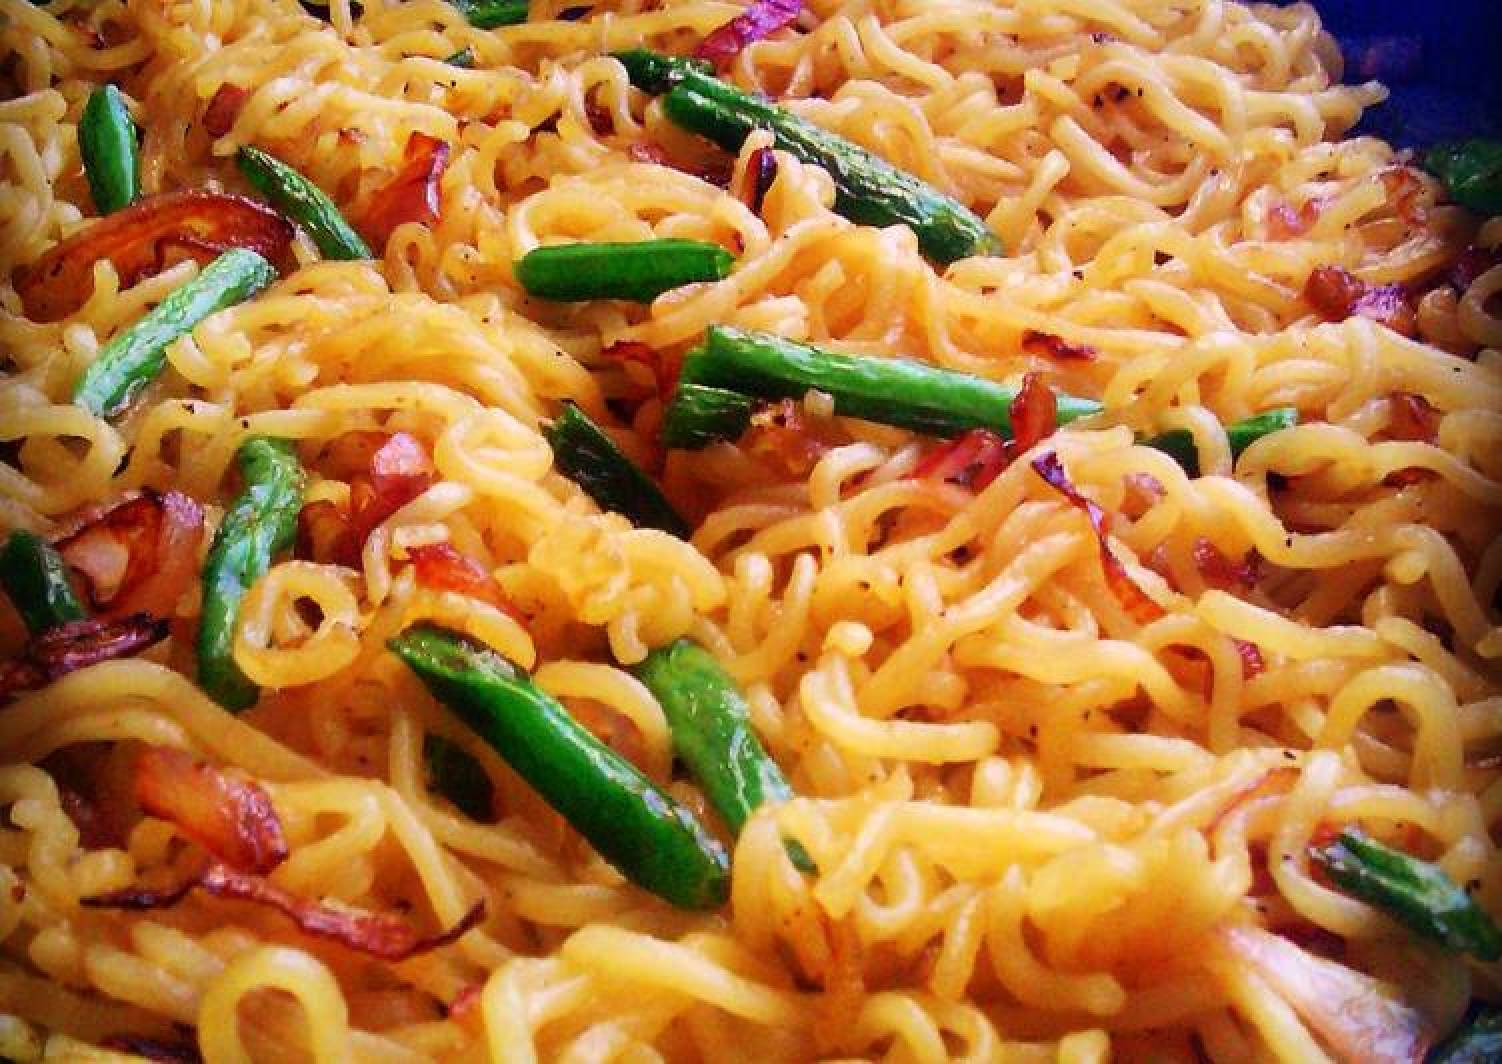 Caramelized Onions French Beans Noodles #Ramadhancontest